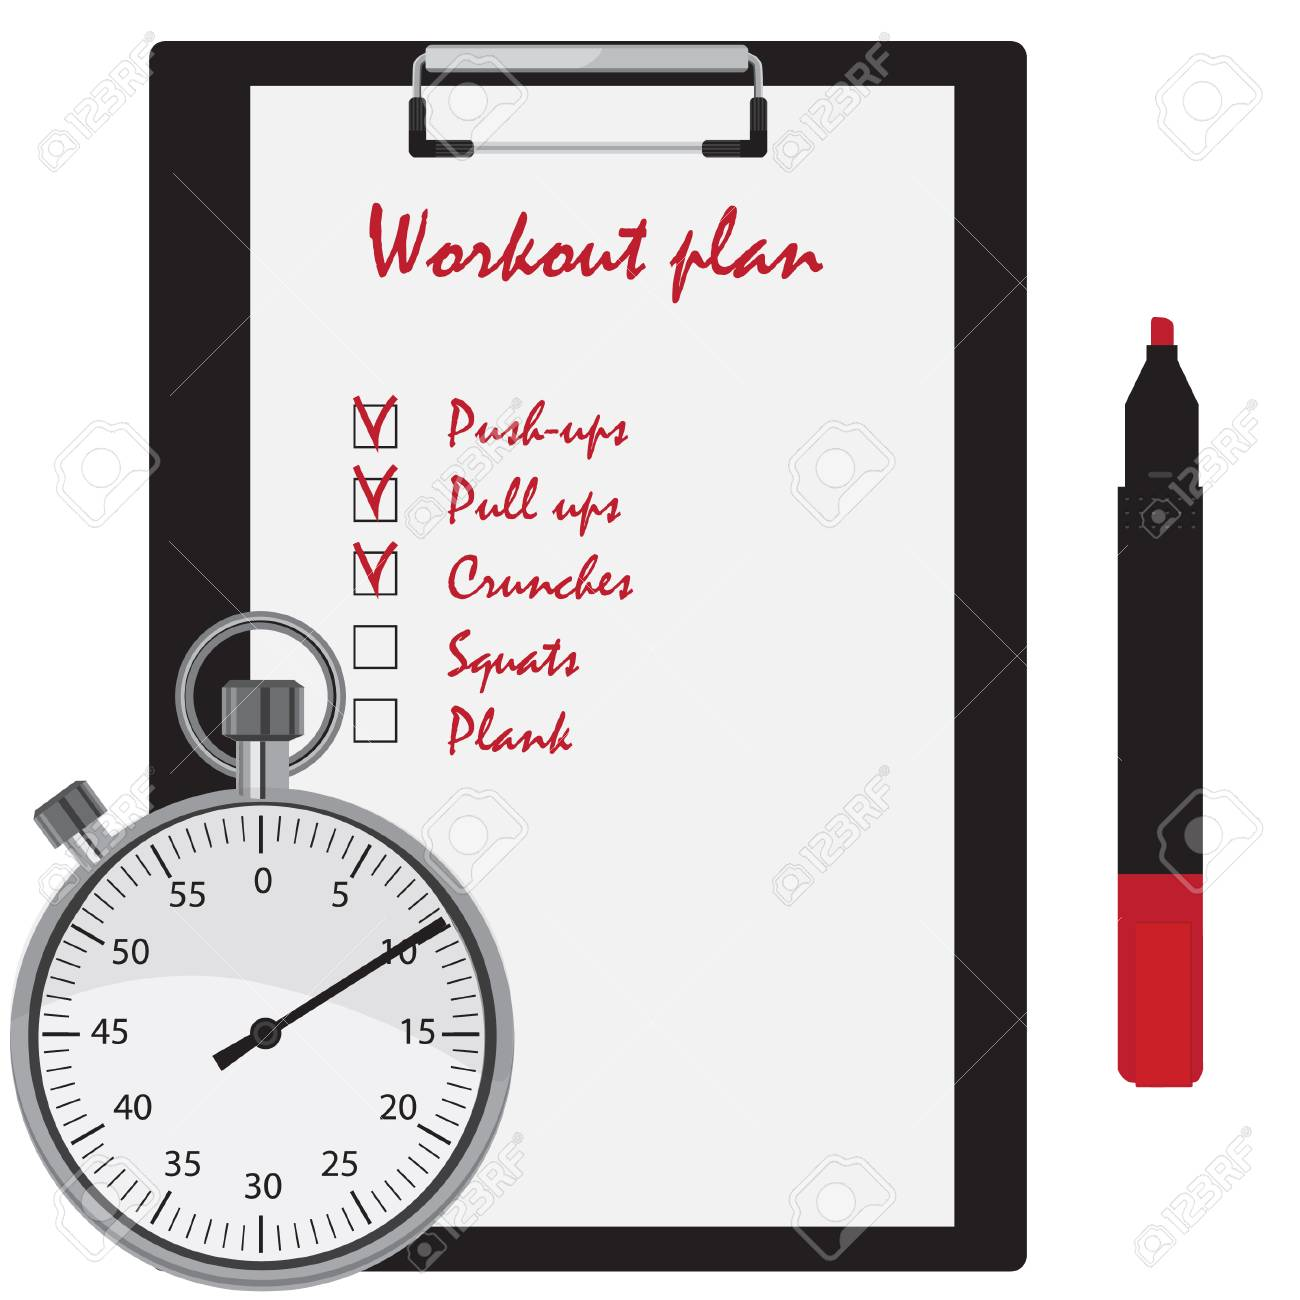 Workout plan with checkboxes on clipboard, red marker pen and